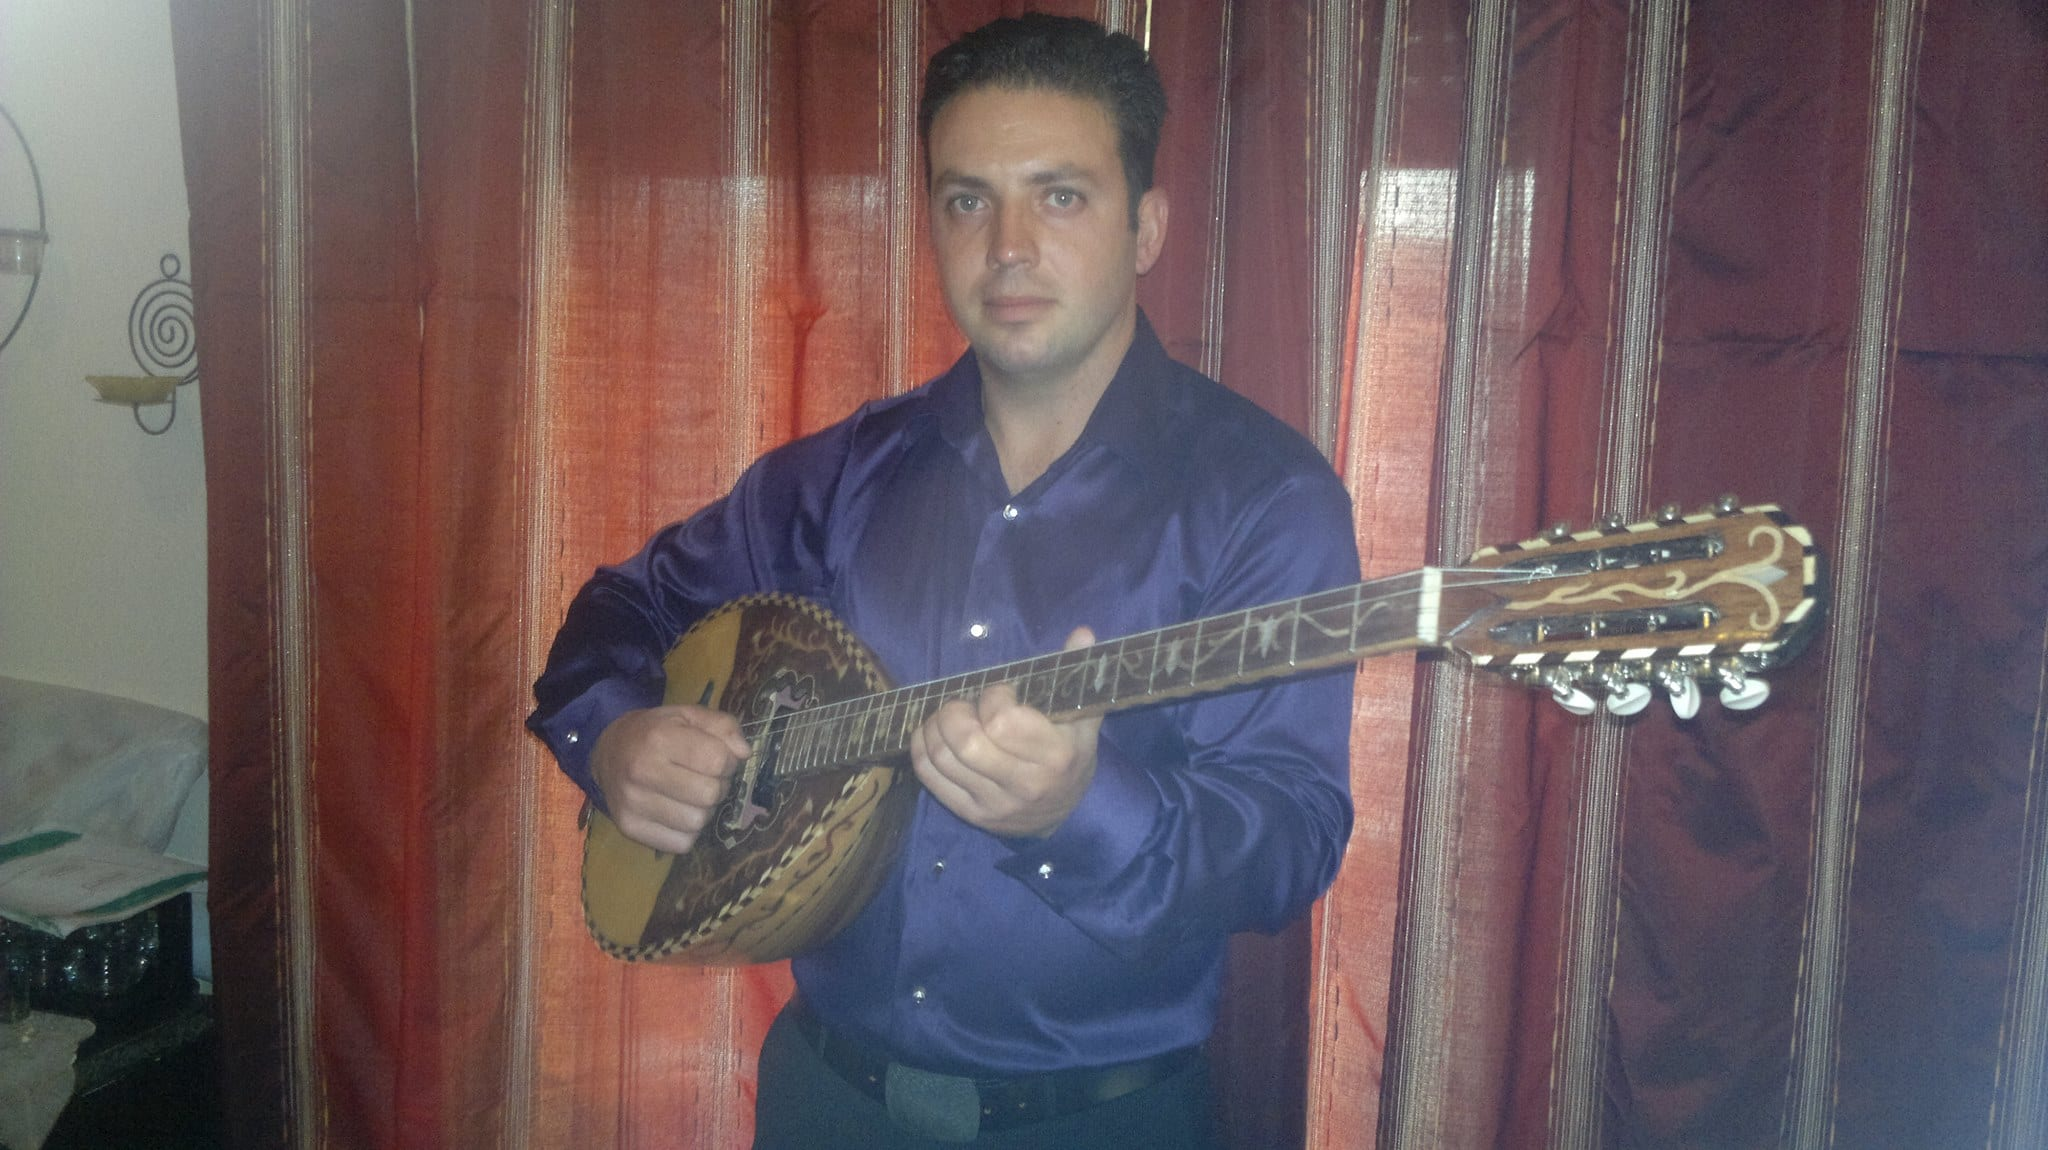 record music with my greek bouzouki or make online lessons